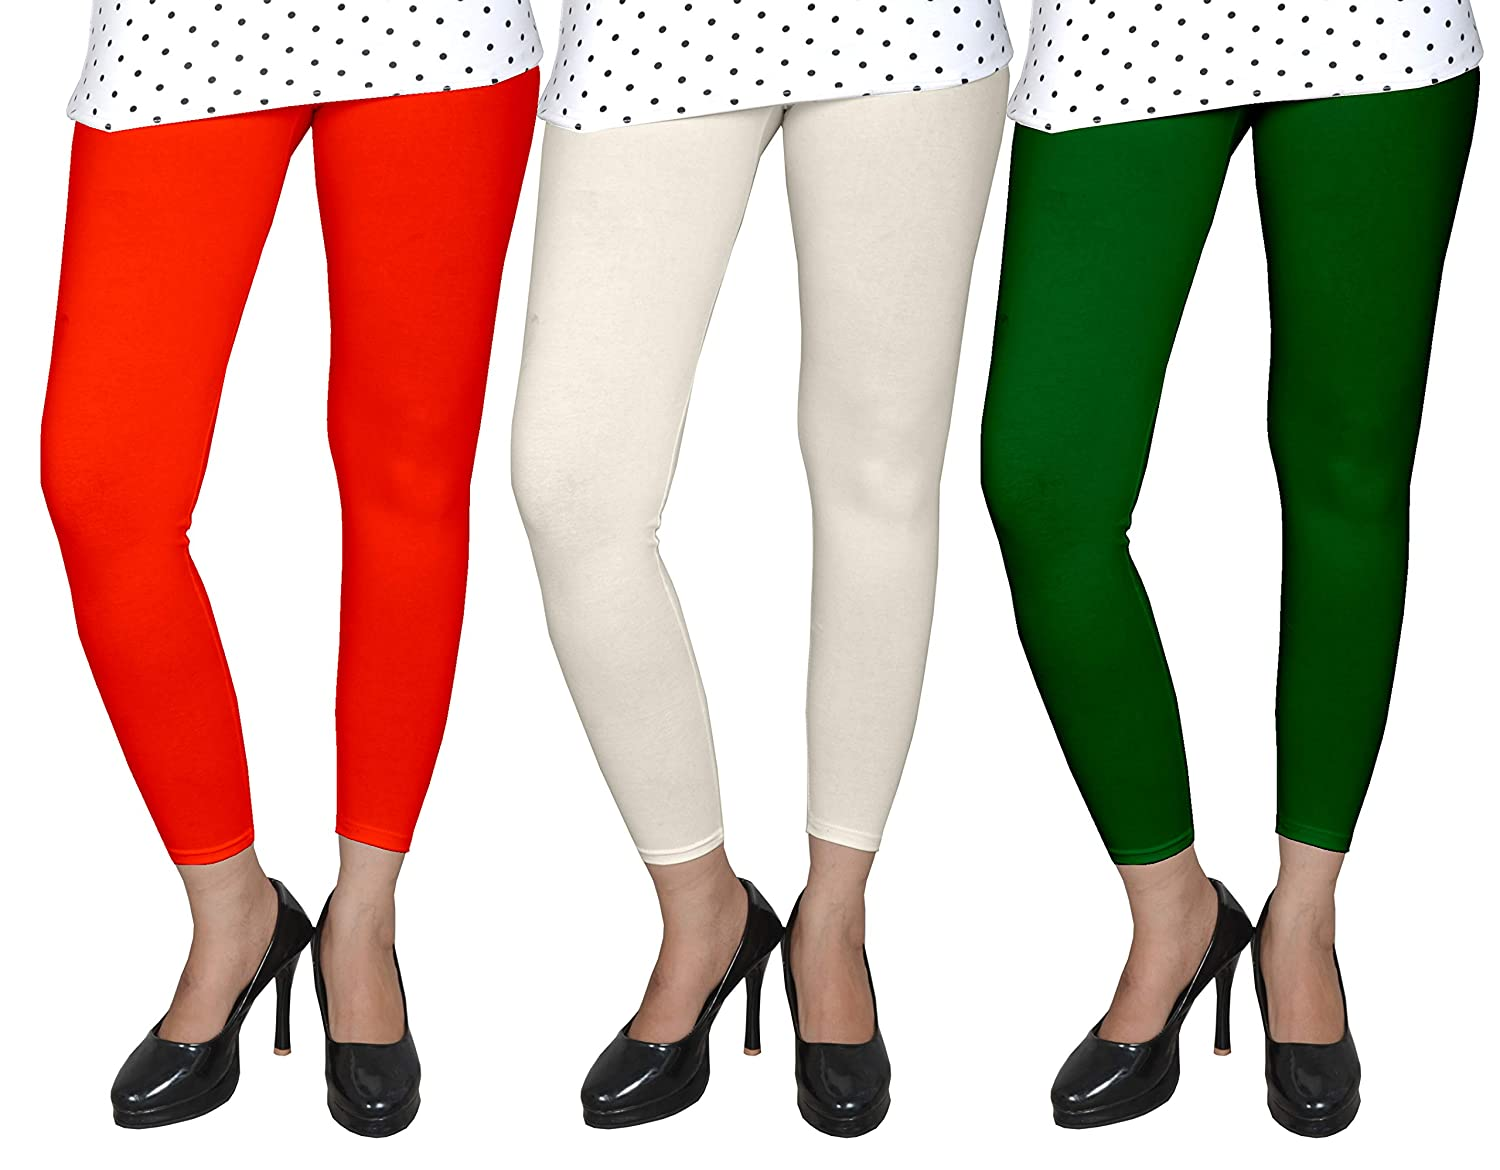 1819f85593775 Ancientstar Ankle Length Leggings for Womens/Girls/Ladies - Black,White,Maroon,Orange,Yellow,Pink,Red,Green,DarkGreen,Navyblue,Purple,Grey,Beige,Raama  ...